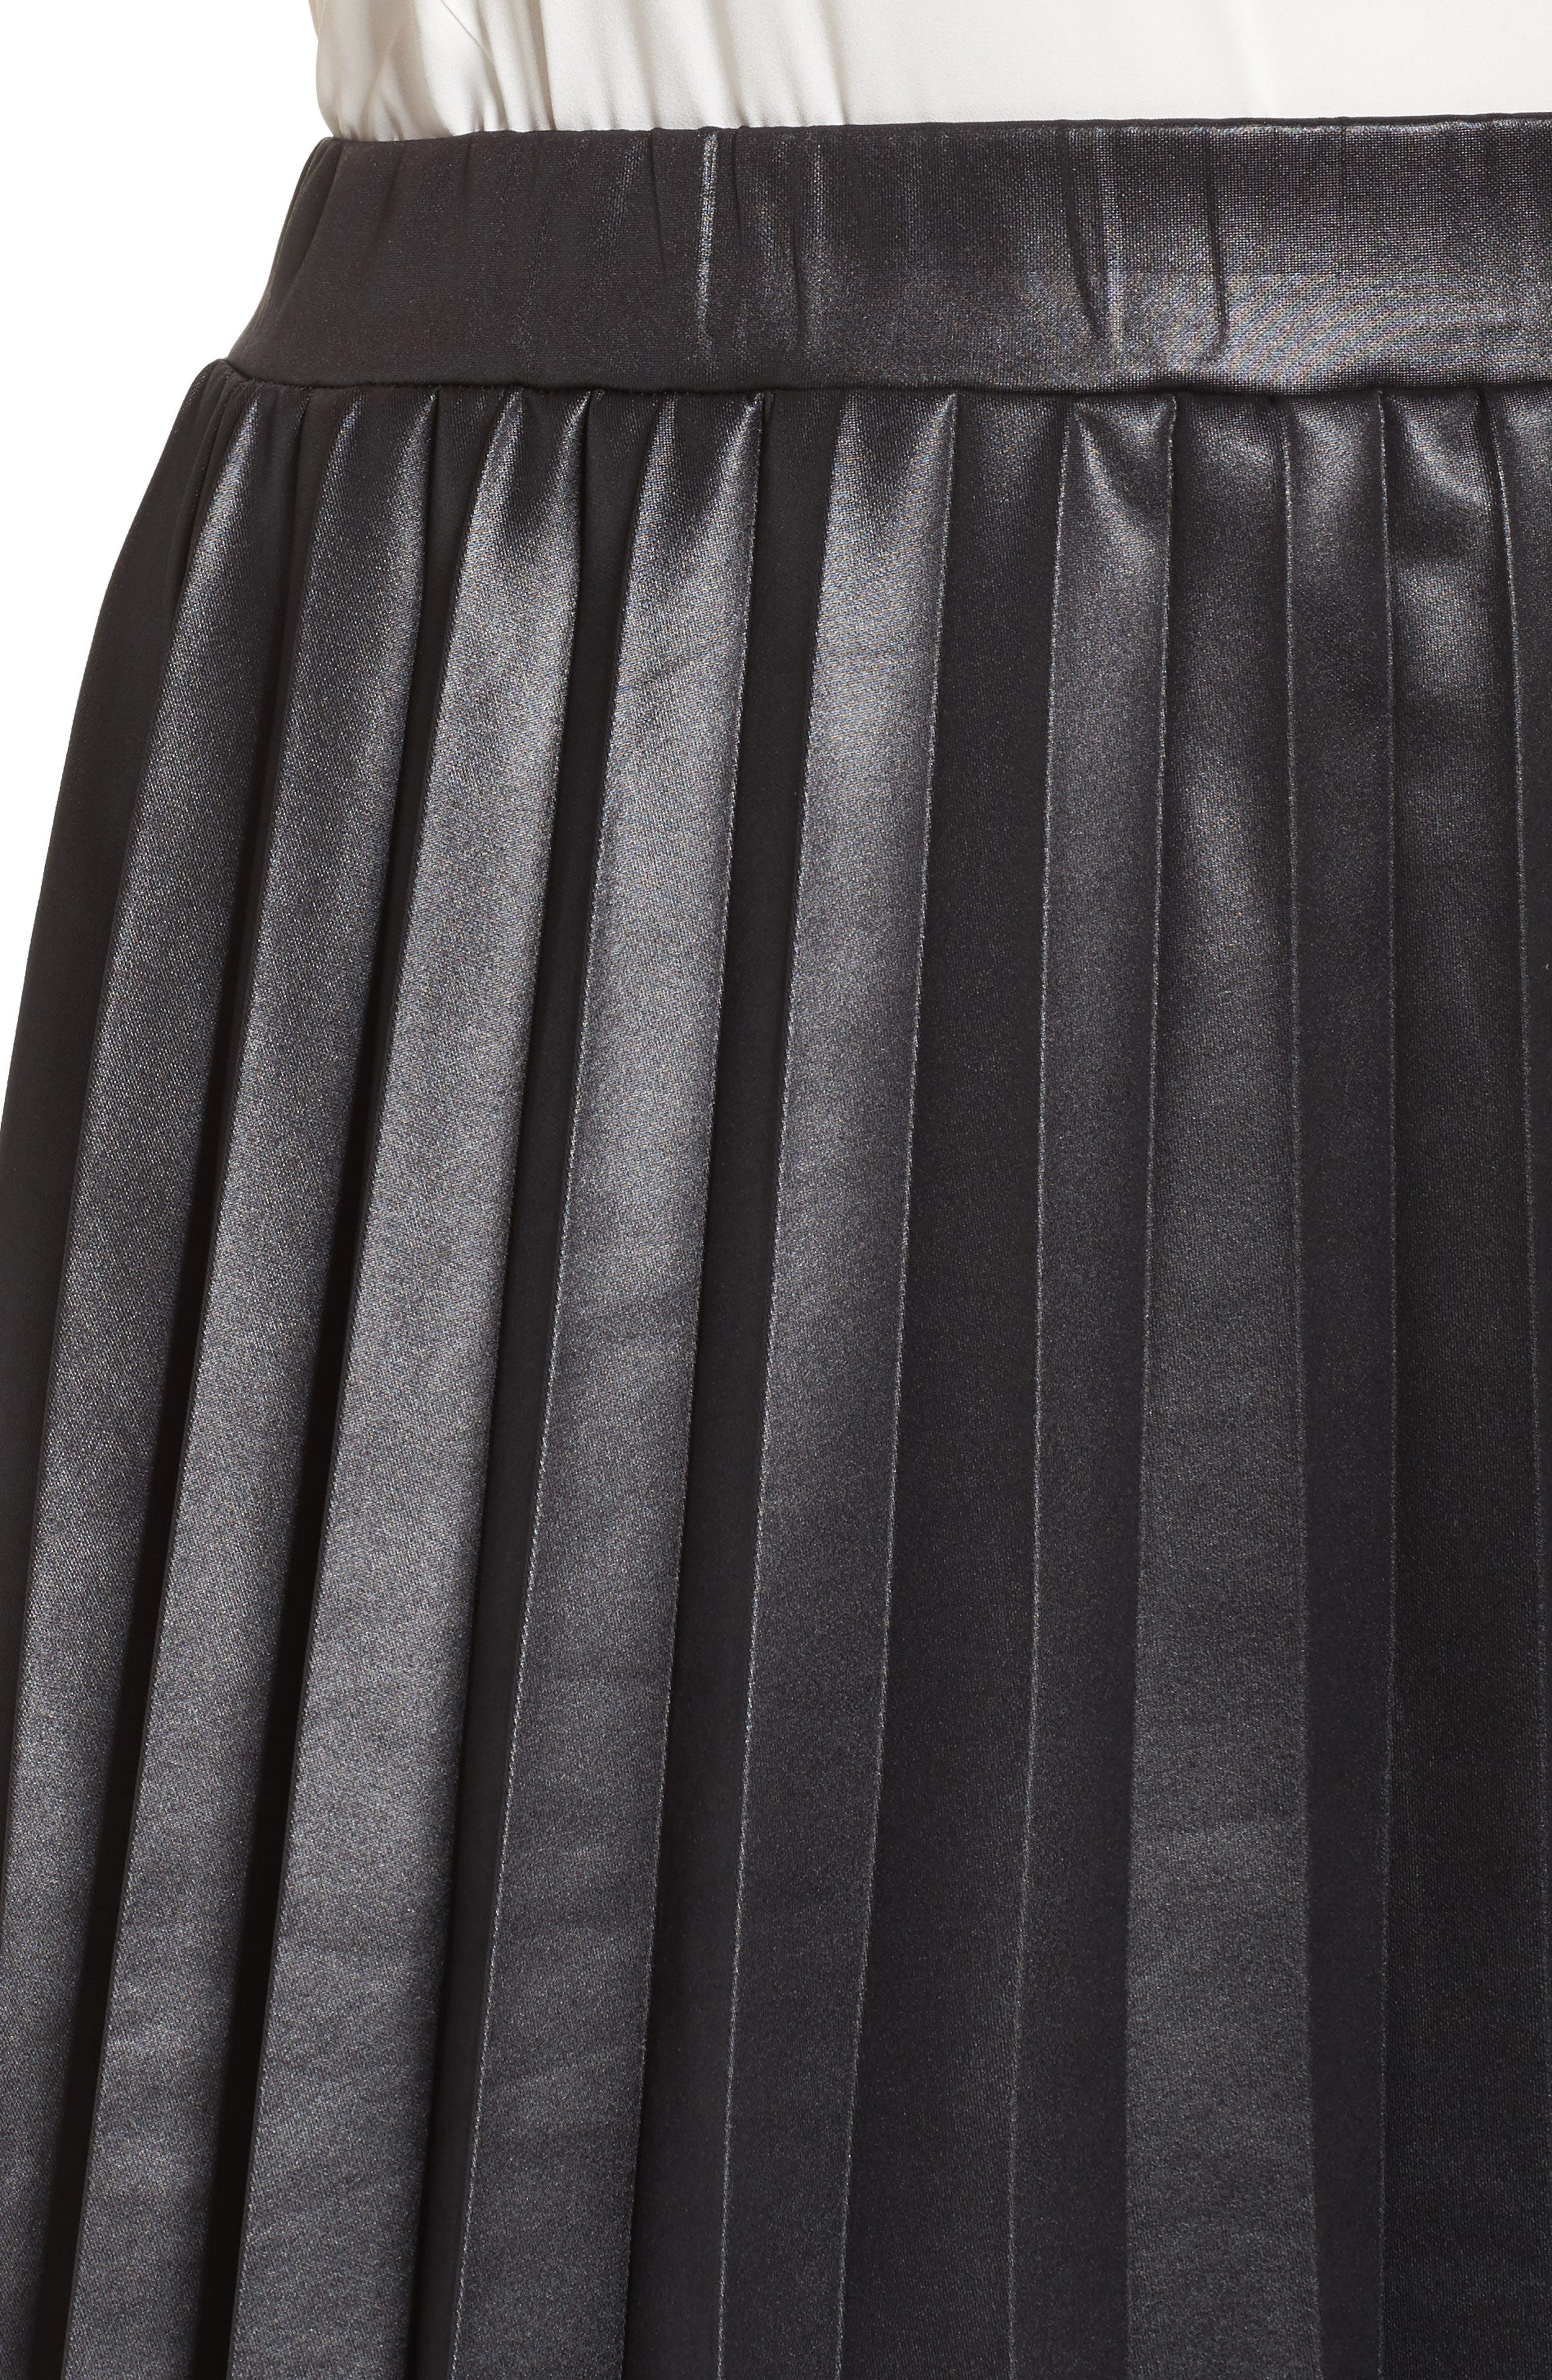 Coated Jersey Pleated Skirt,                             Alternate thumbnail 4, color,